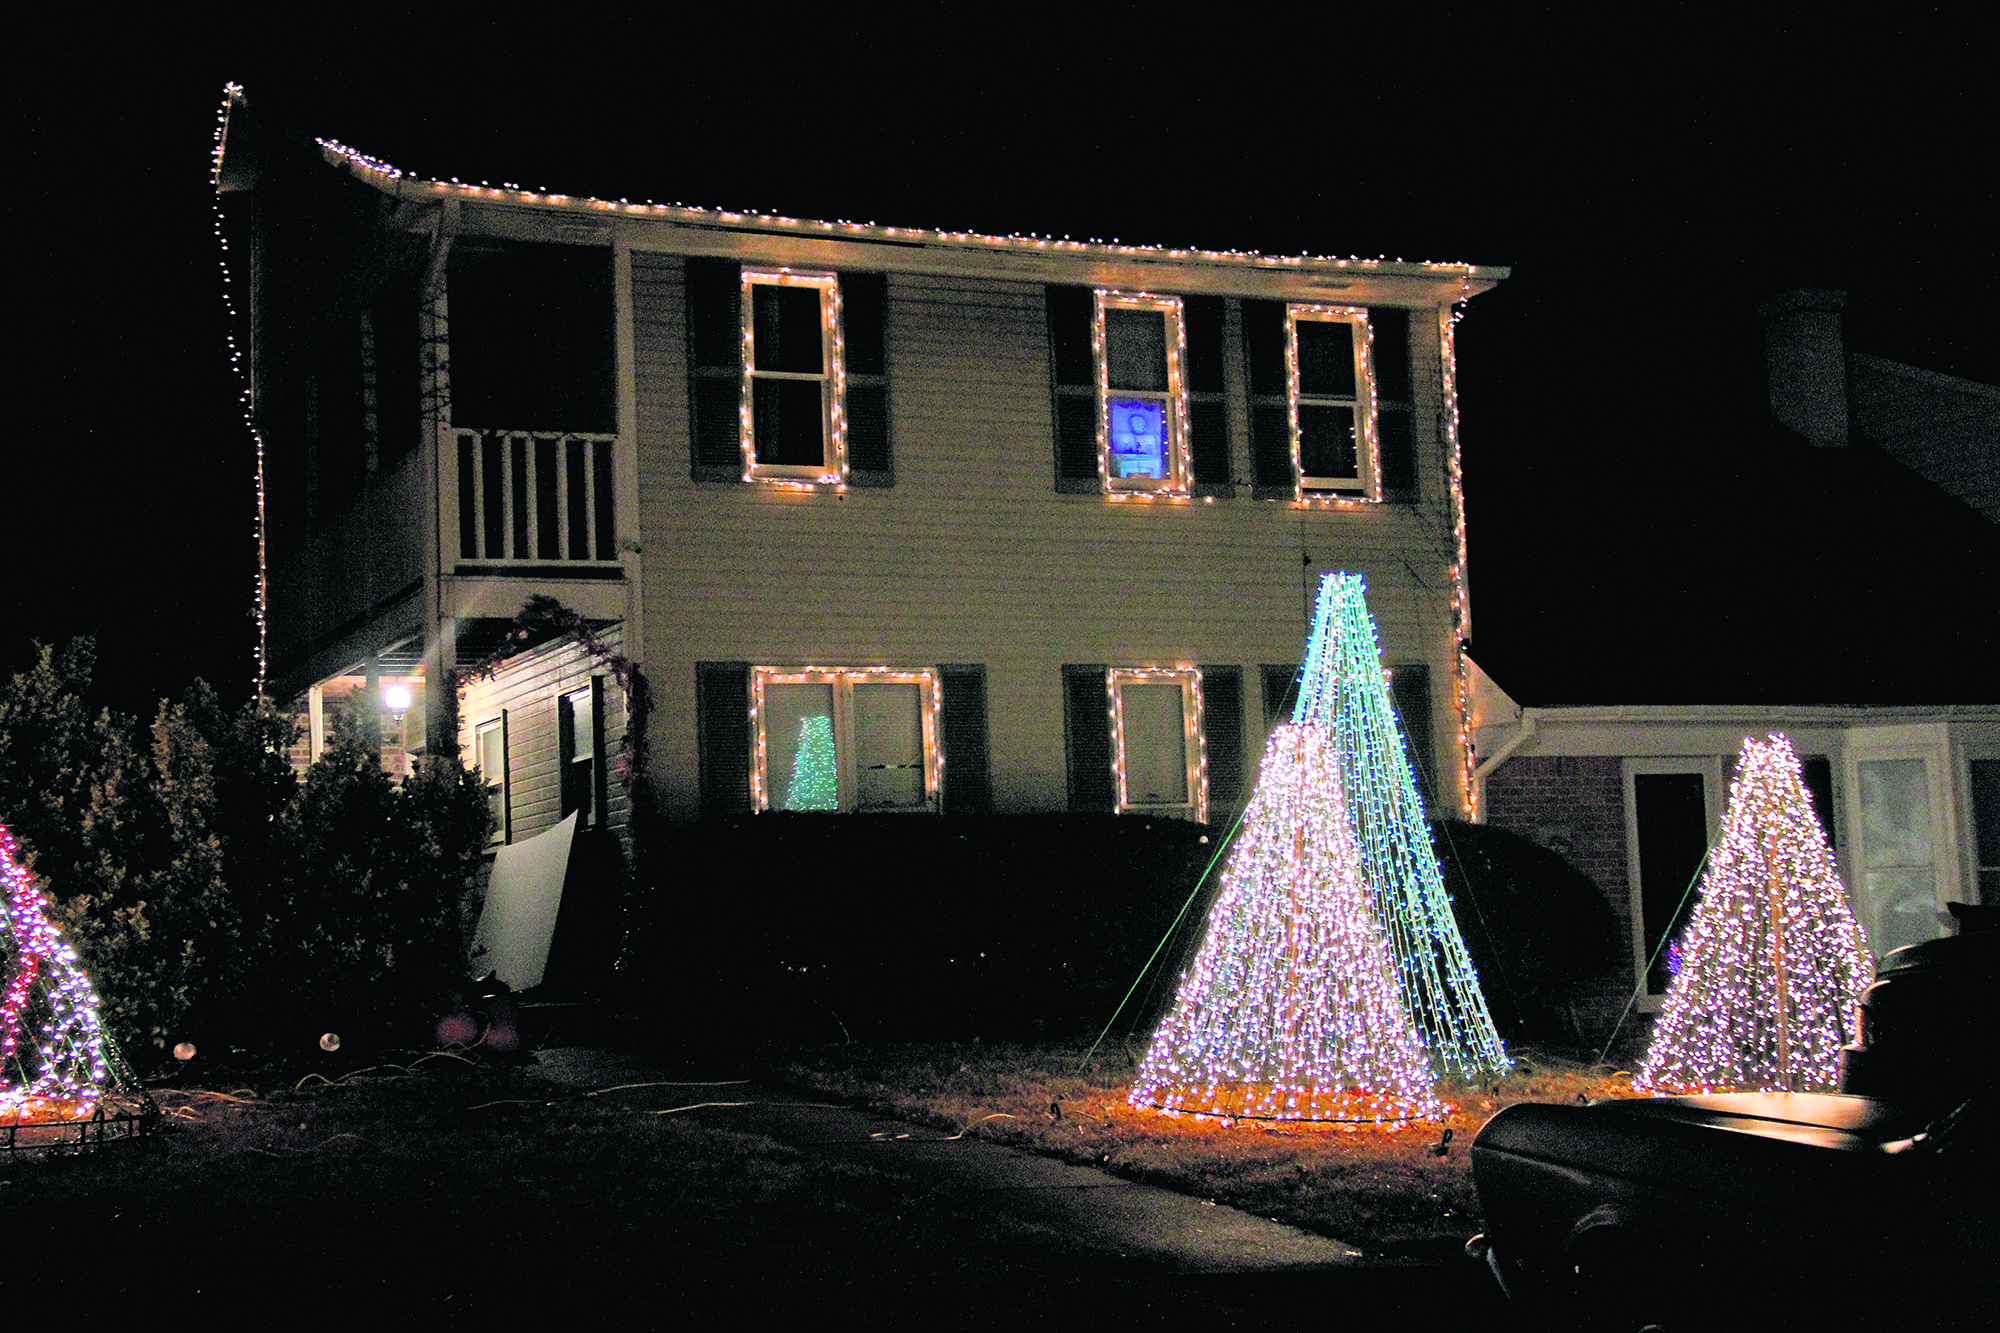 Local family spreading cheer, charity with holiday lights display